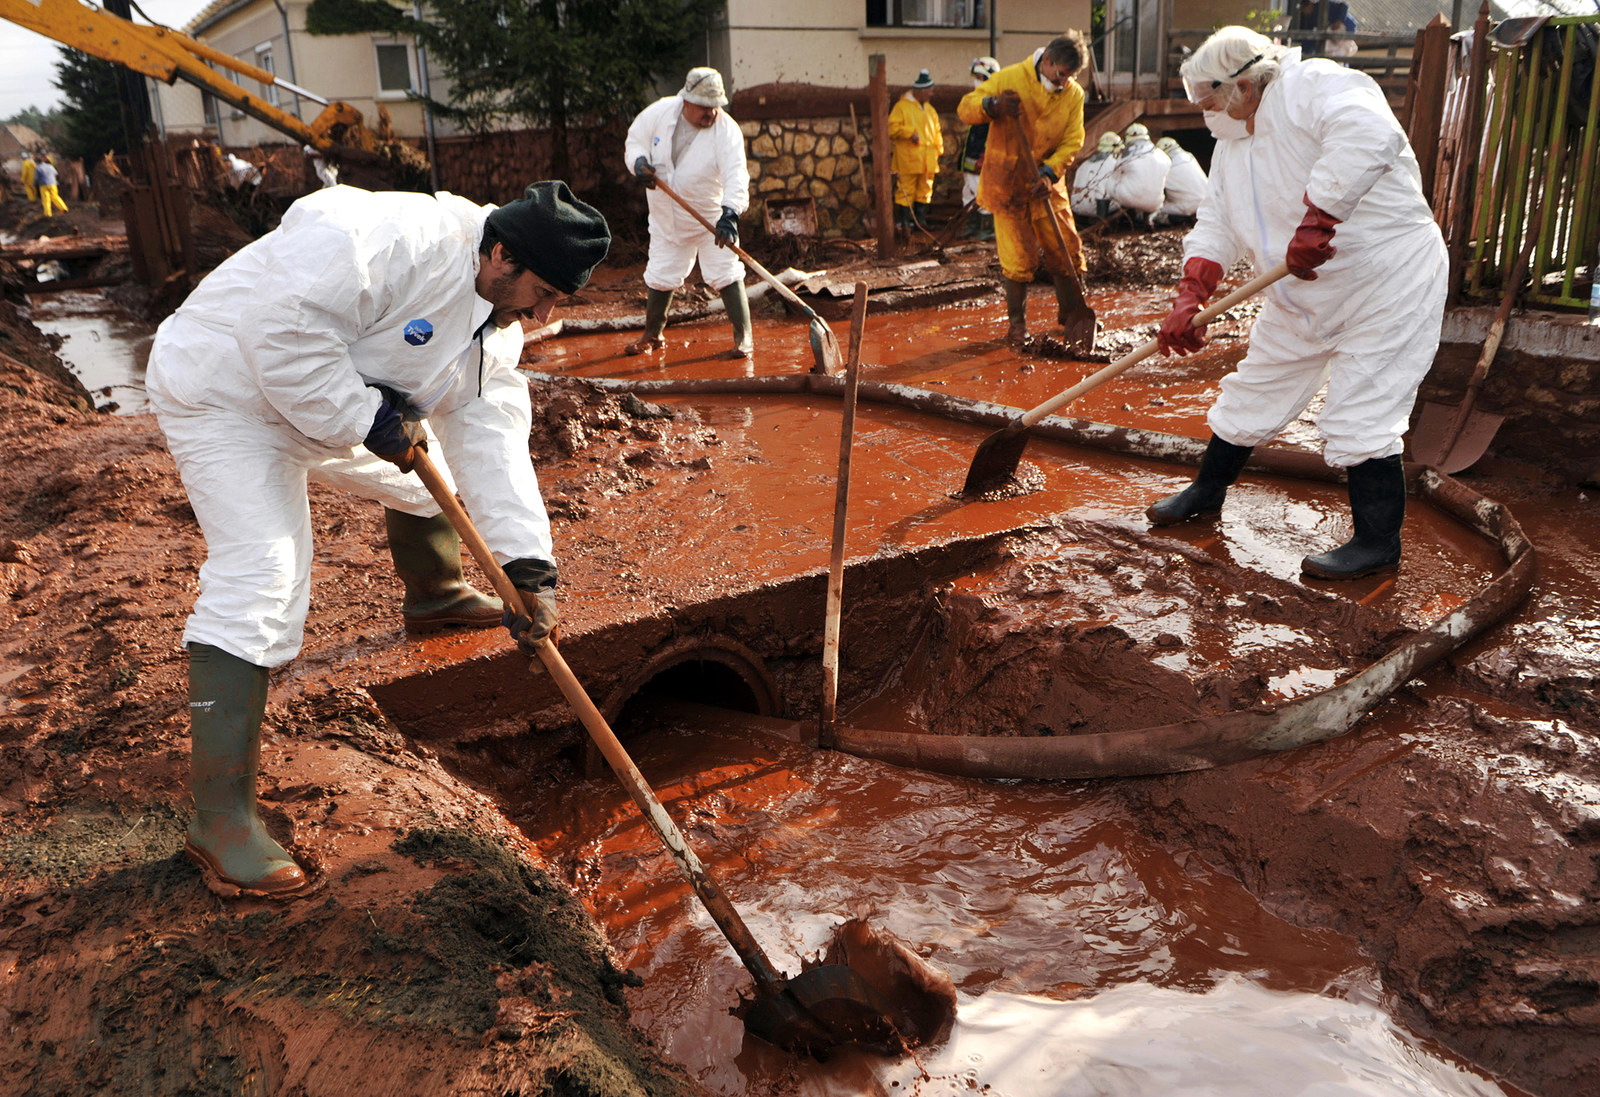 Community workers, wearing protective gear, clean a street flooded by toxic mud in the village of Kolontár, Hungary, on Oct. 7, 2010.